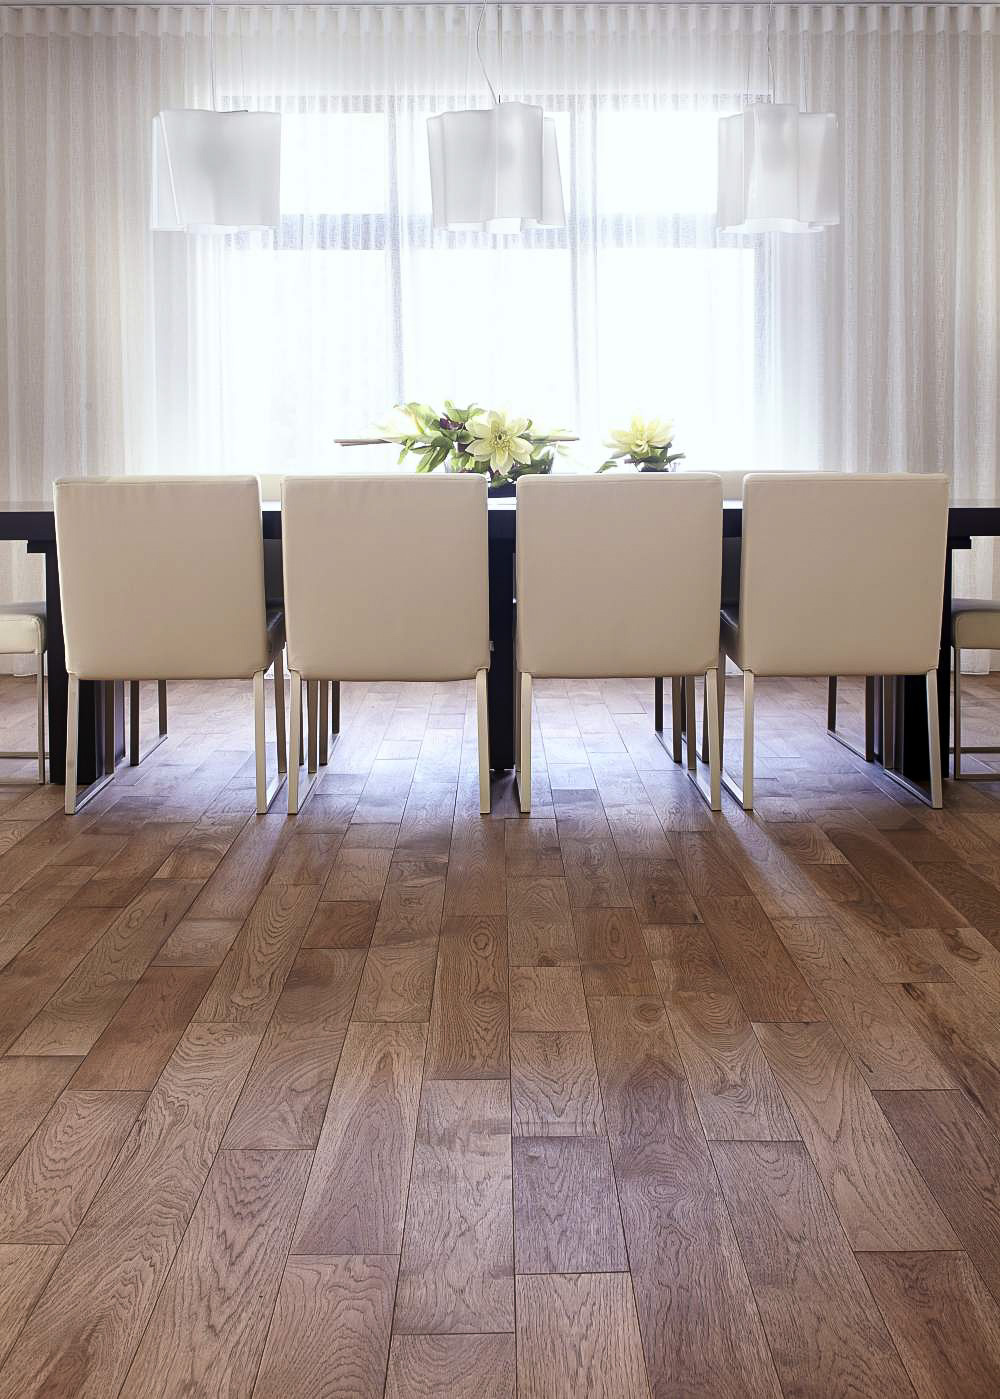 hickory hardwood wide plank kitchen floors with oil finish.jpg